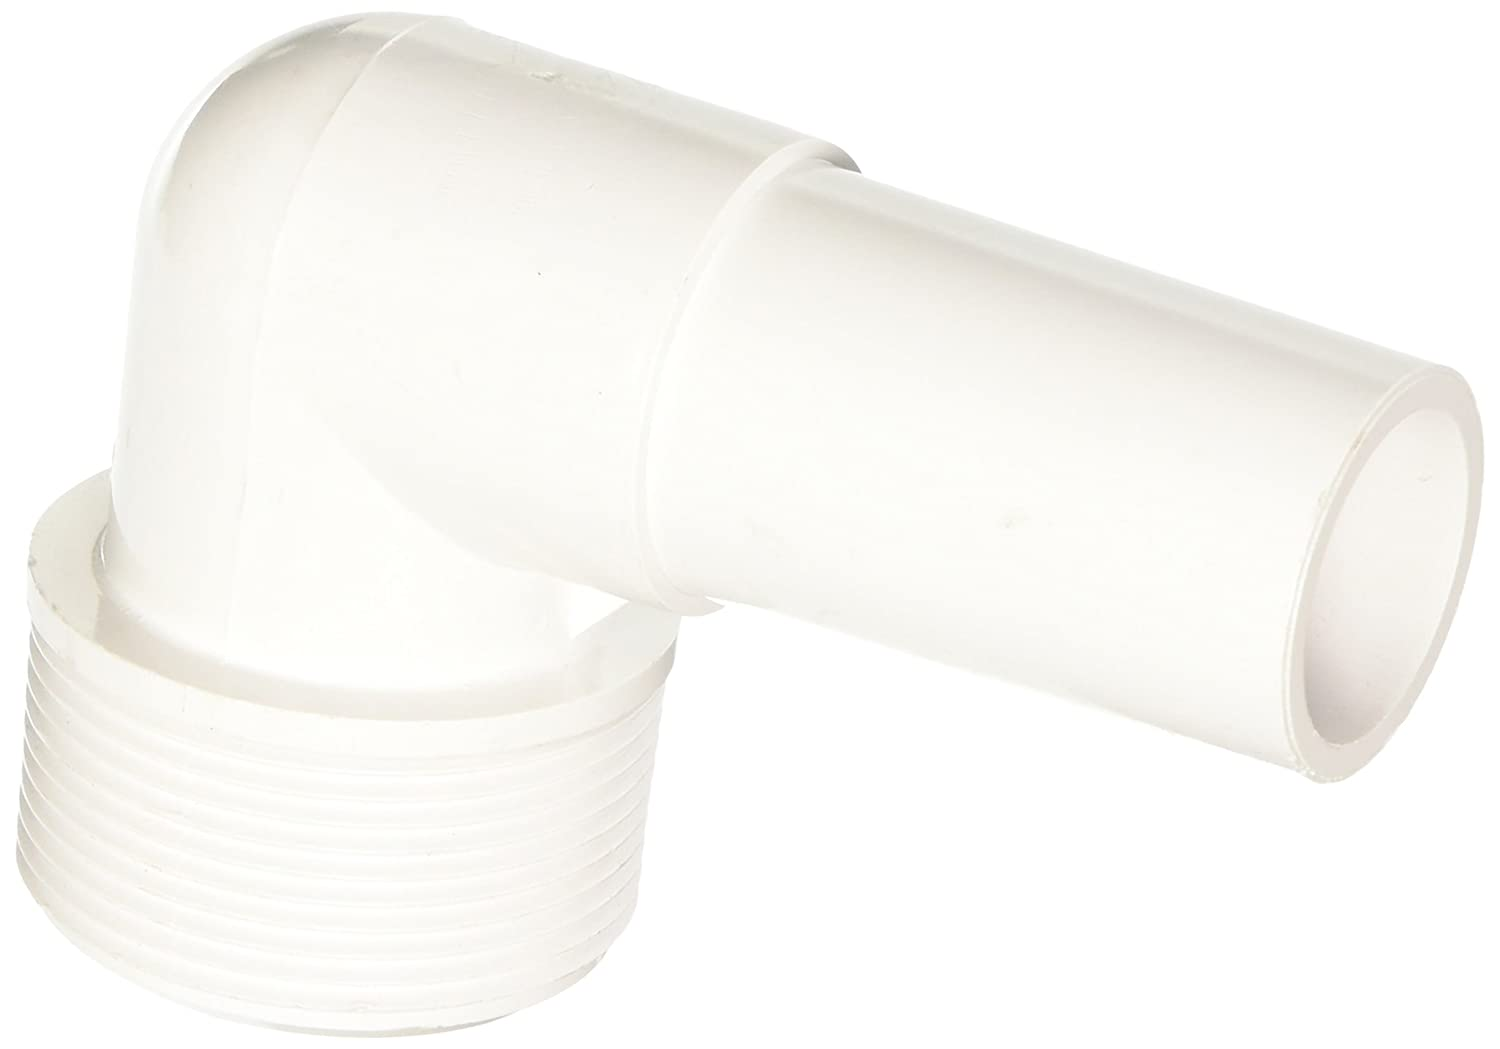 Hayward SPX1105Z2 Smooth Hose Elbow Replacement Sp11052 Skim-vac Automatic Skimmers